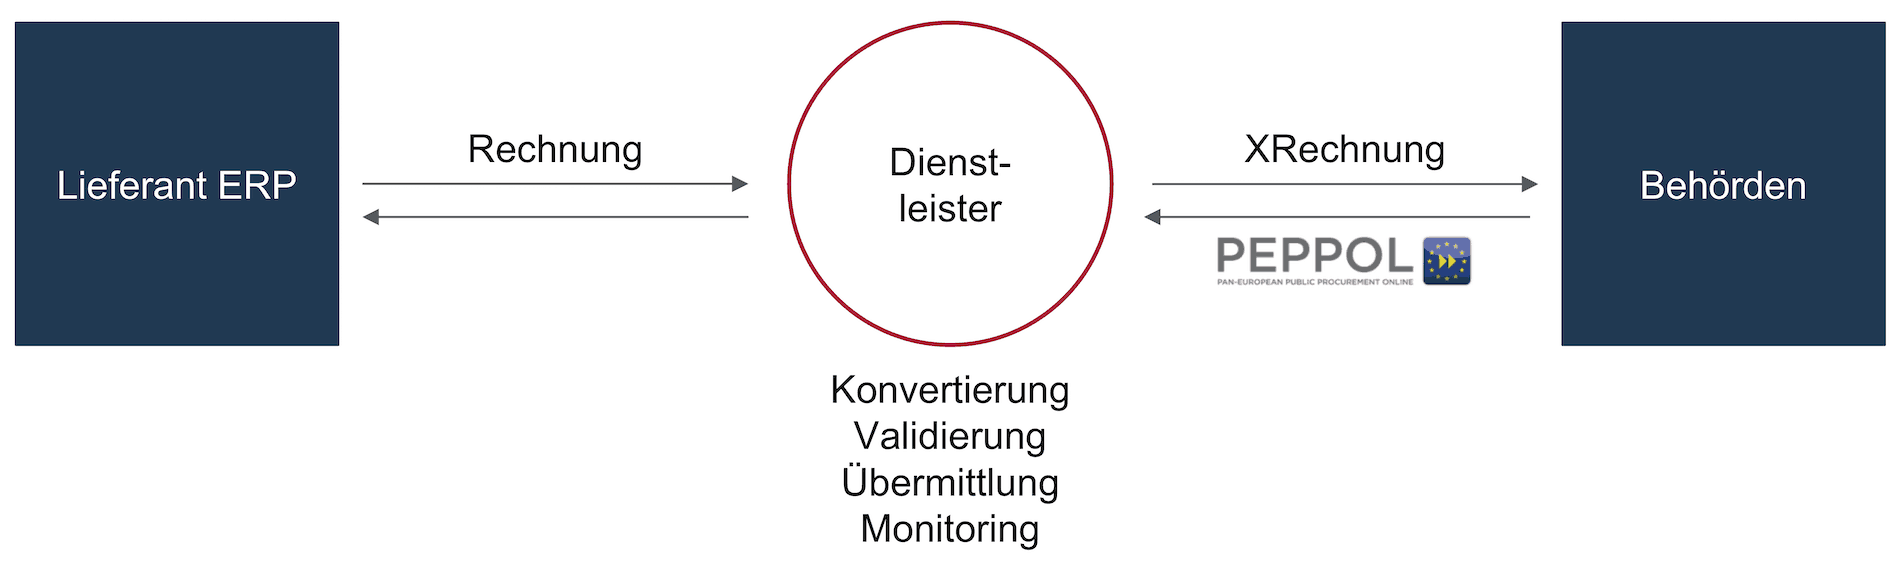 Example of an XRechnung Workflow Using a Service Provider